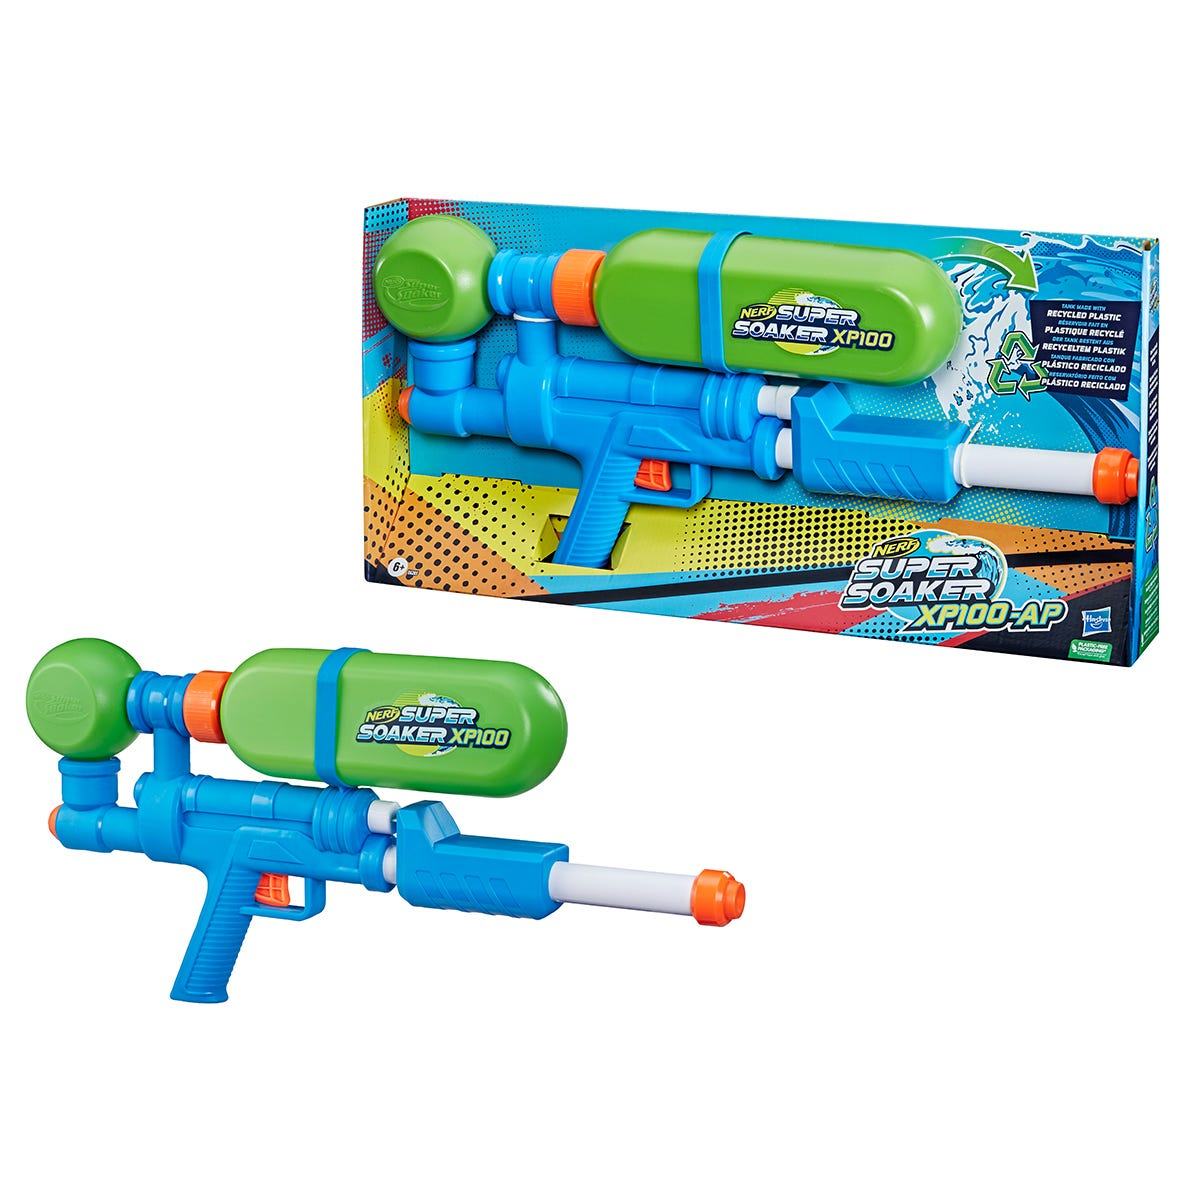 Nerf Super Soaker XP100-AP Water Blaster with Air-Pressurized Continuous Blast & Removable Tank